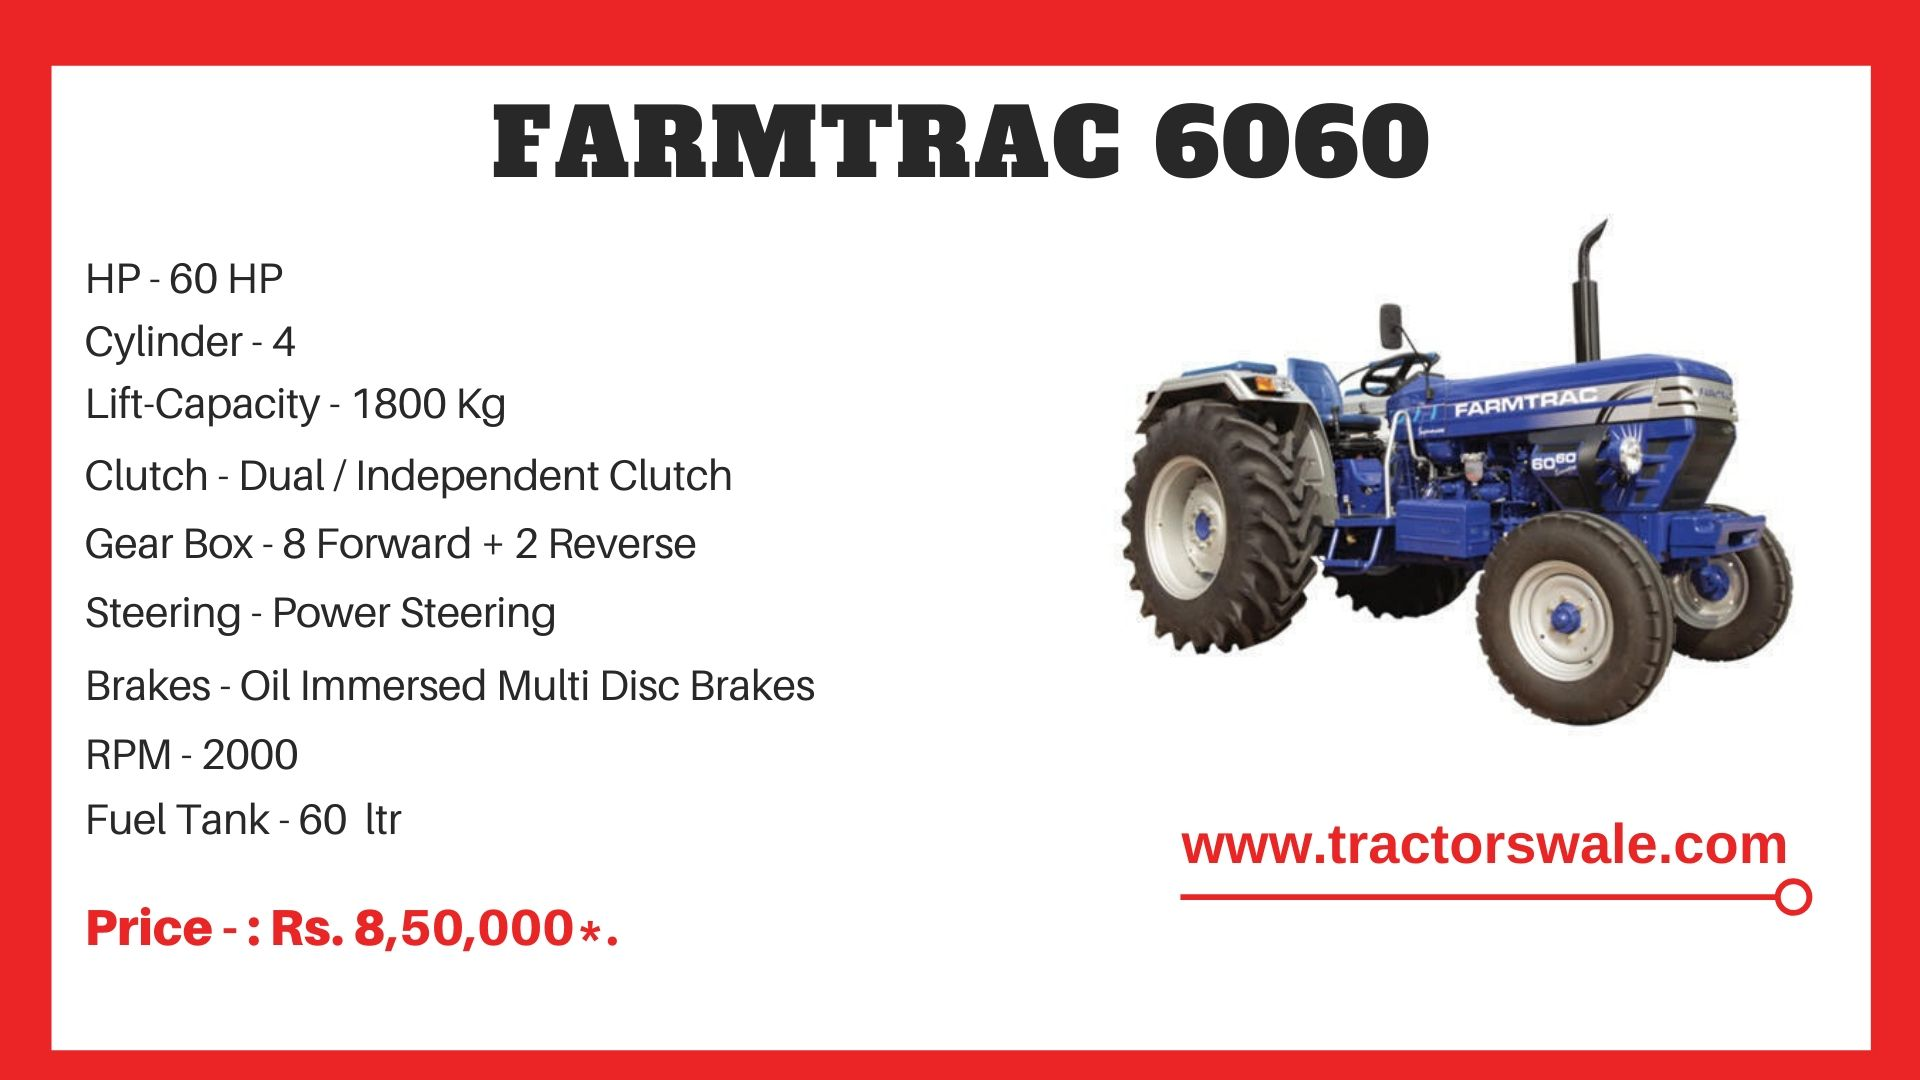 Farmtrac 6060 tractor price